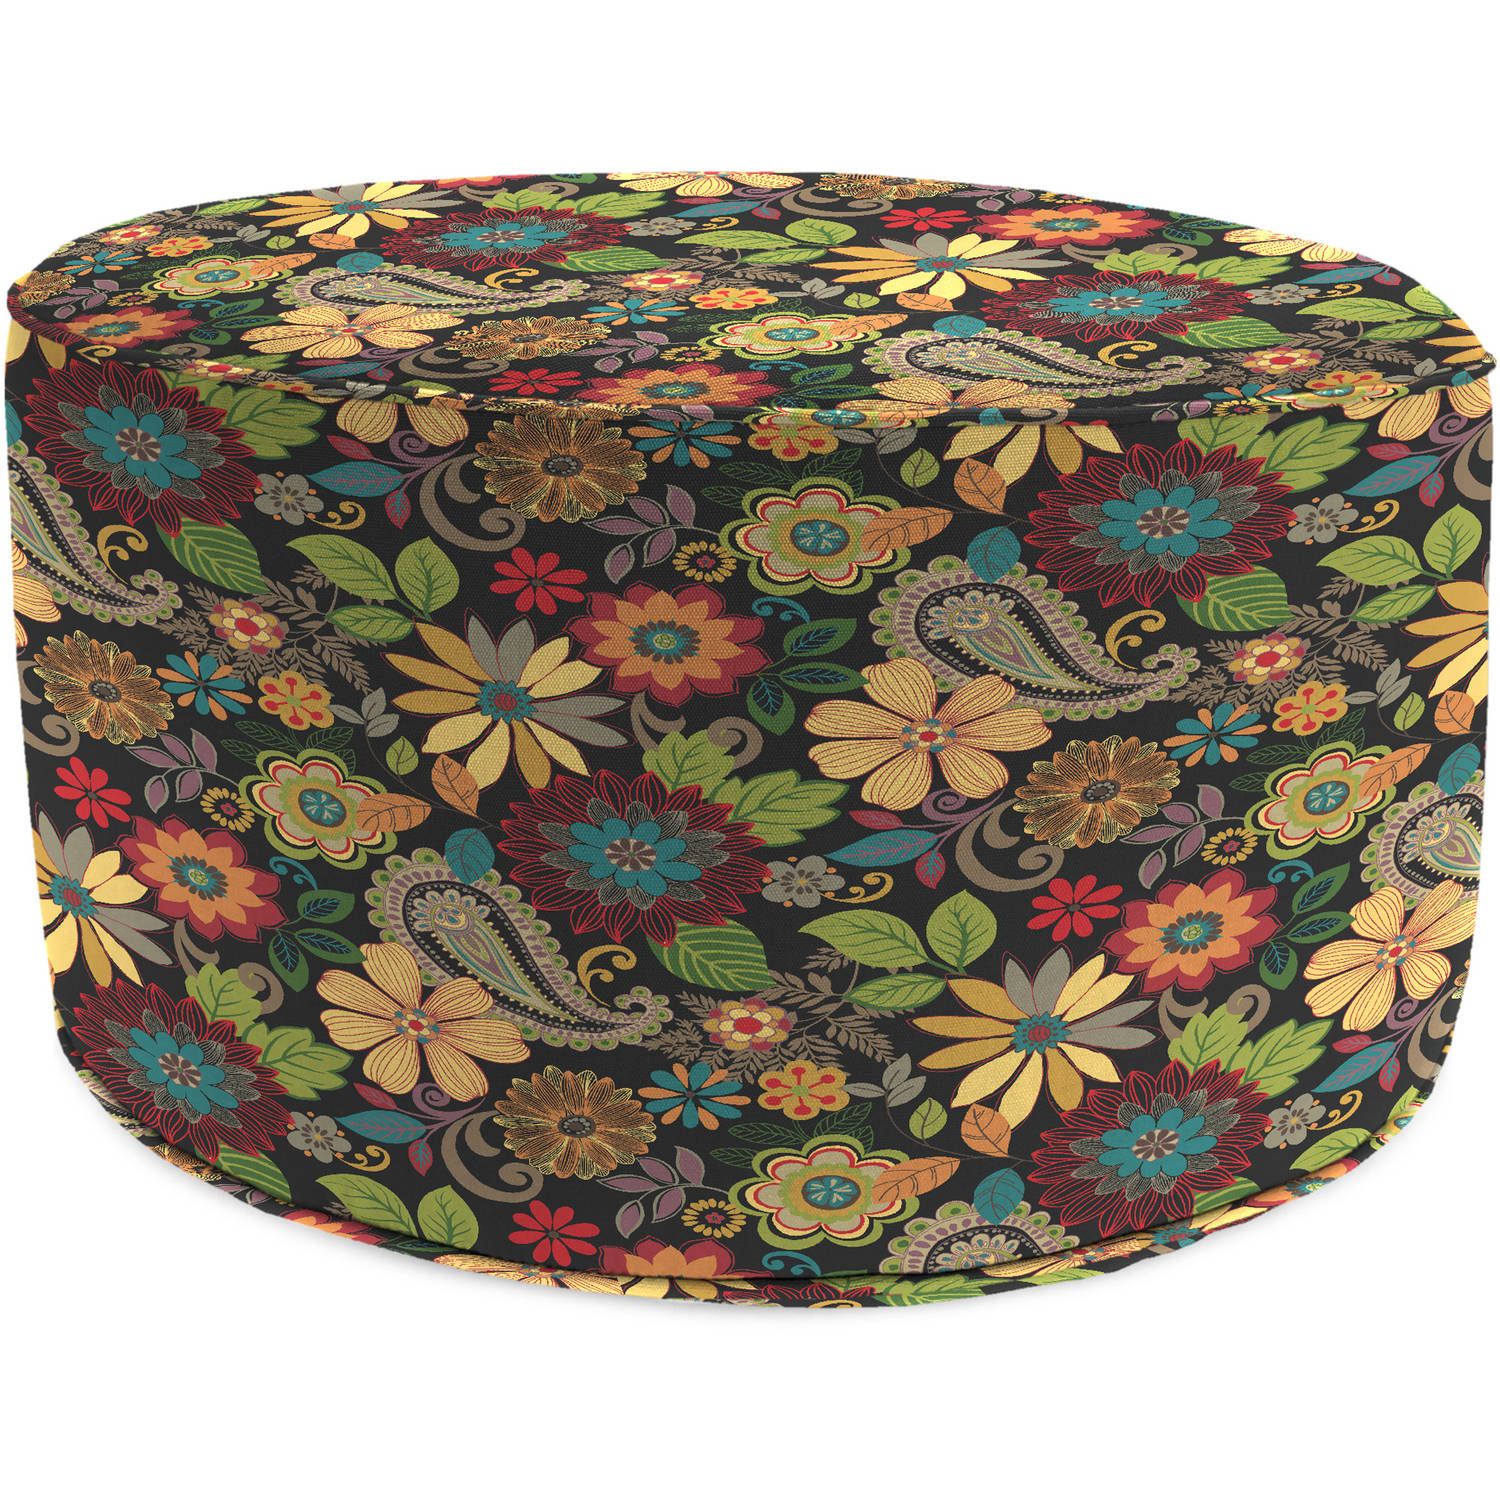 Jordan Manufacturing Outdoor Patio Round Pouf Ottoman